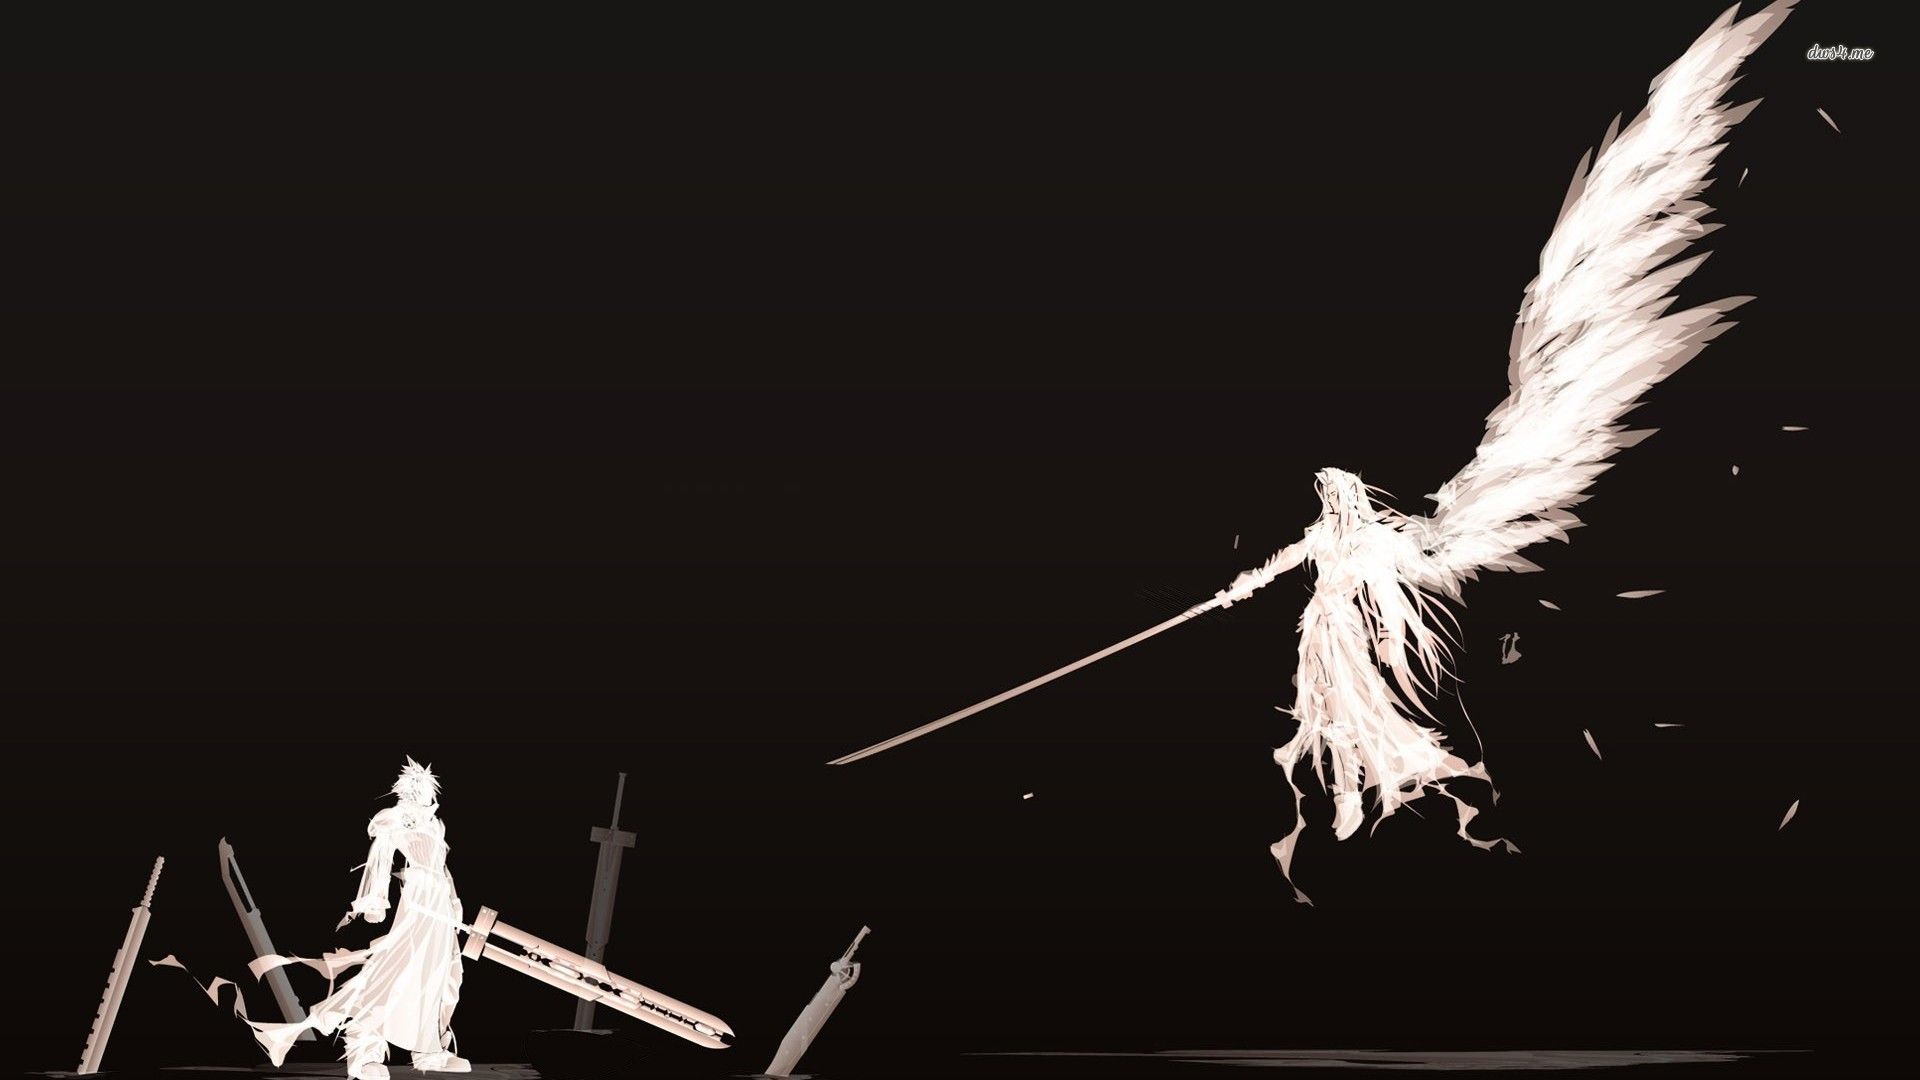 Cloud and Sephiroth, HD Quality Images, Jelle Kenson